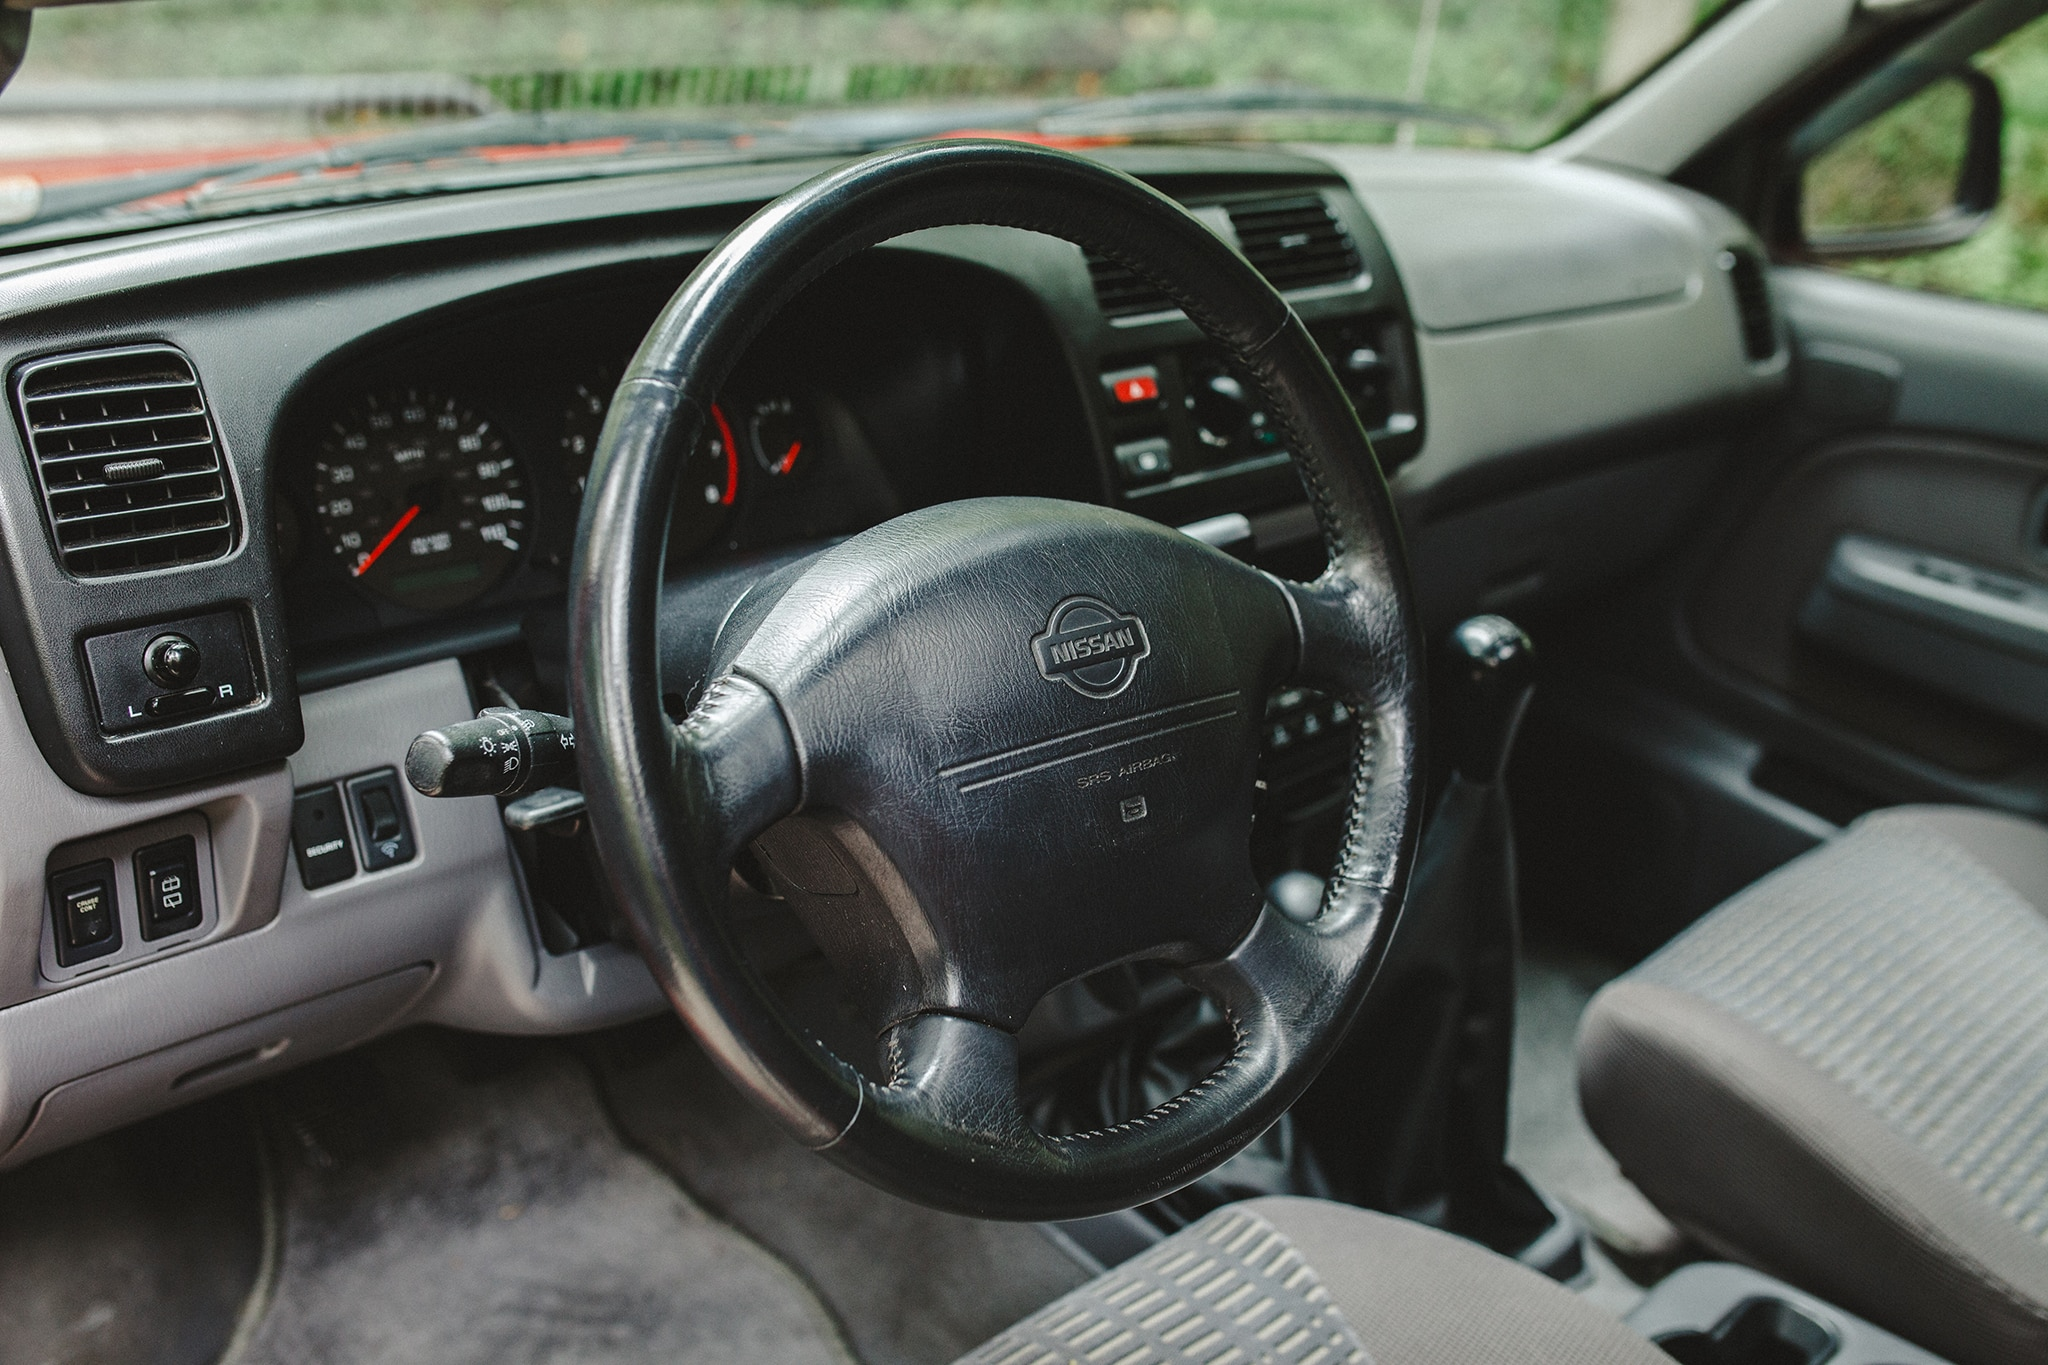 2000 nissan frontier manual transmission